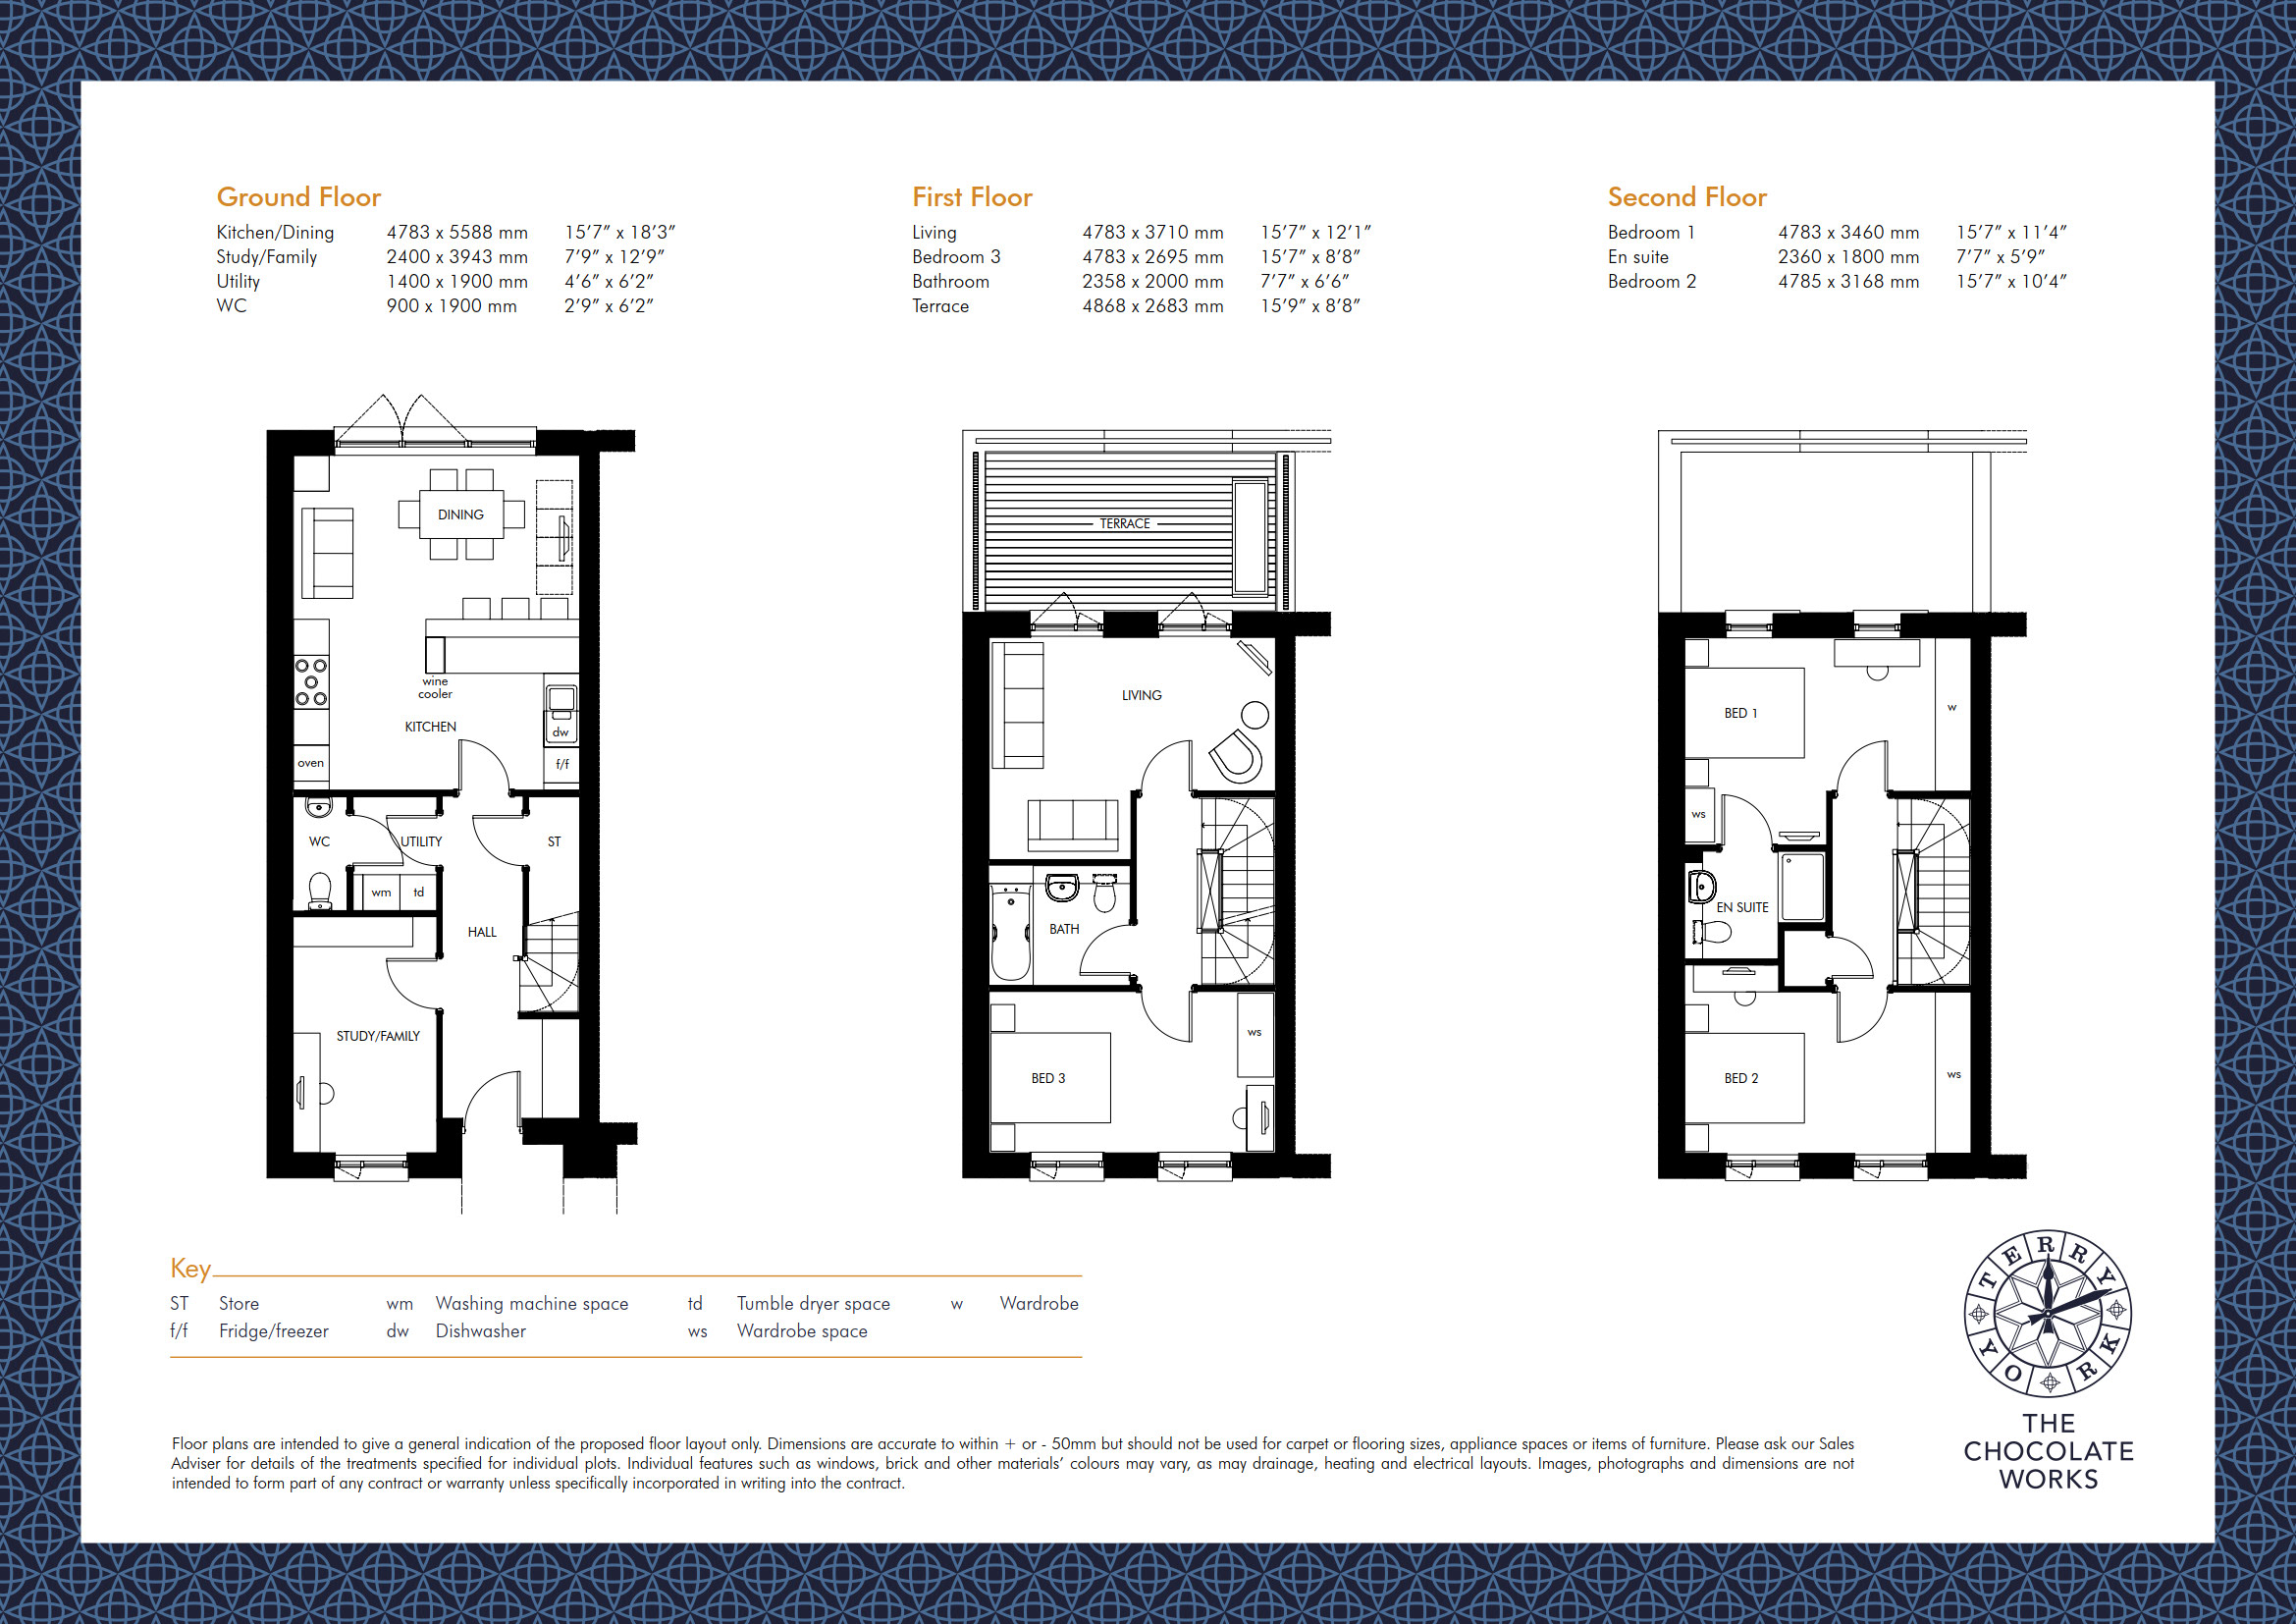 UK York The Chocolate Works Townhouse 05 on Townhouse Floor Plans